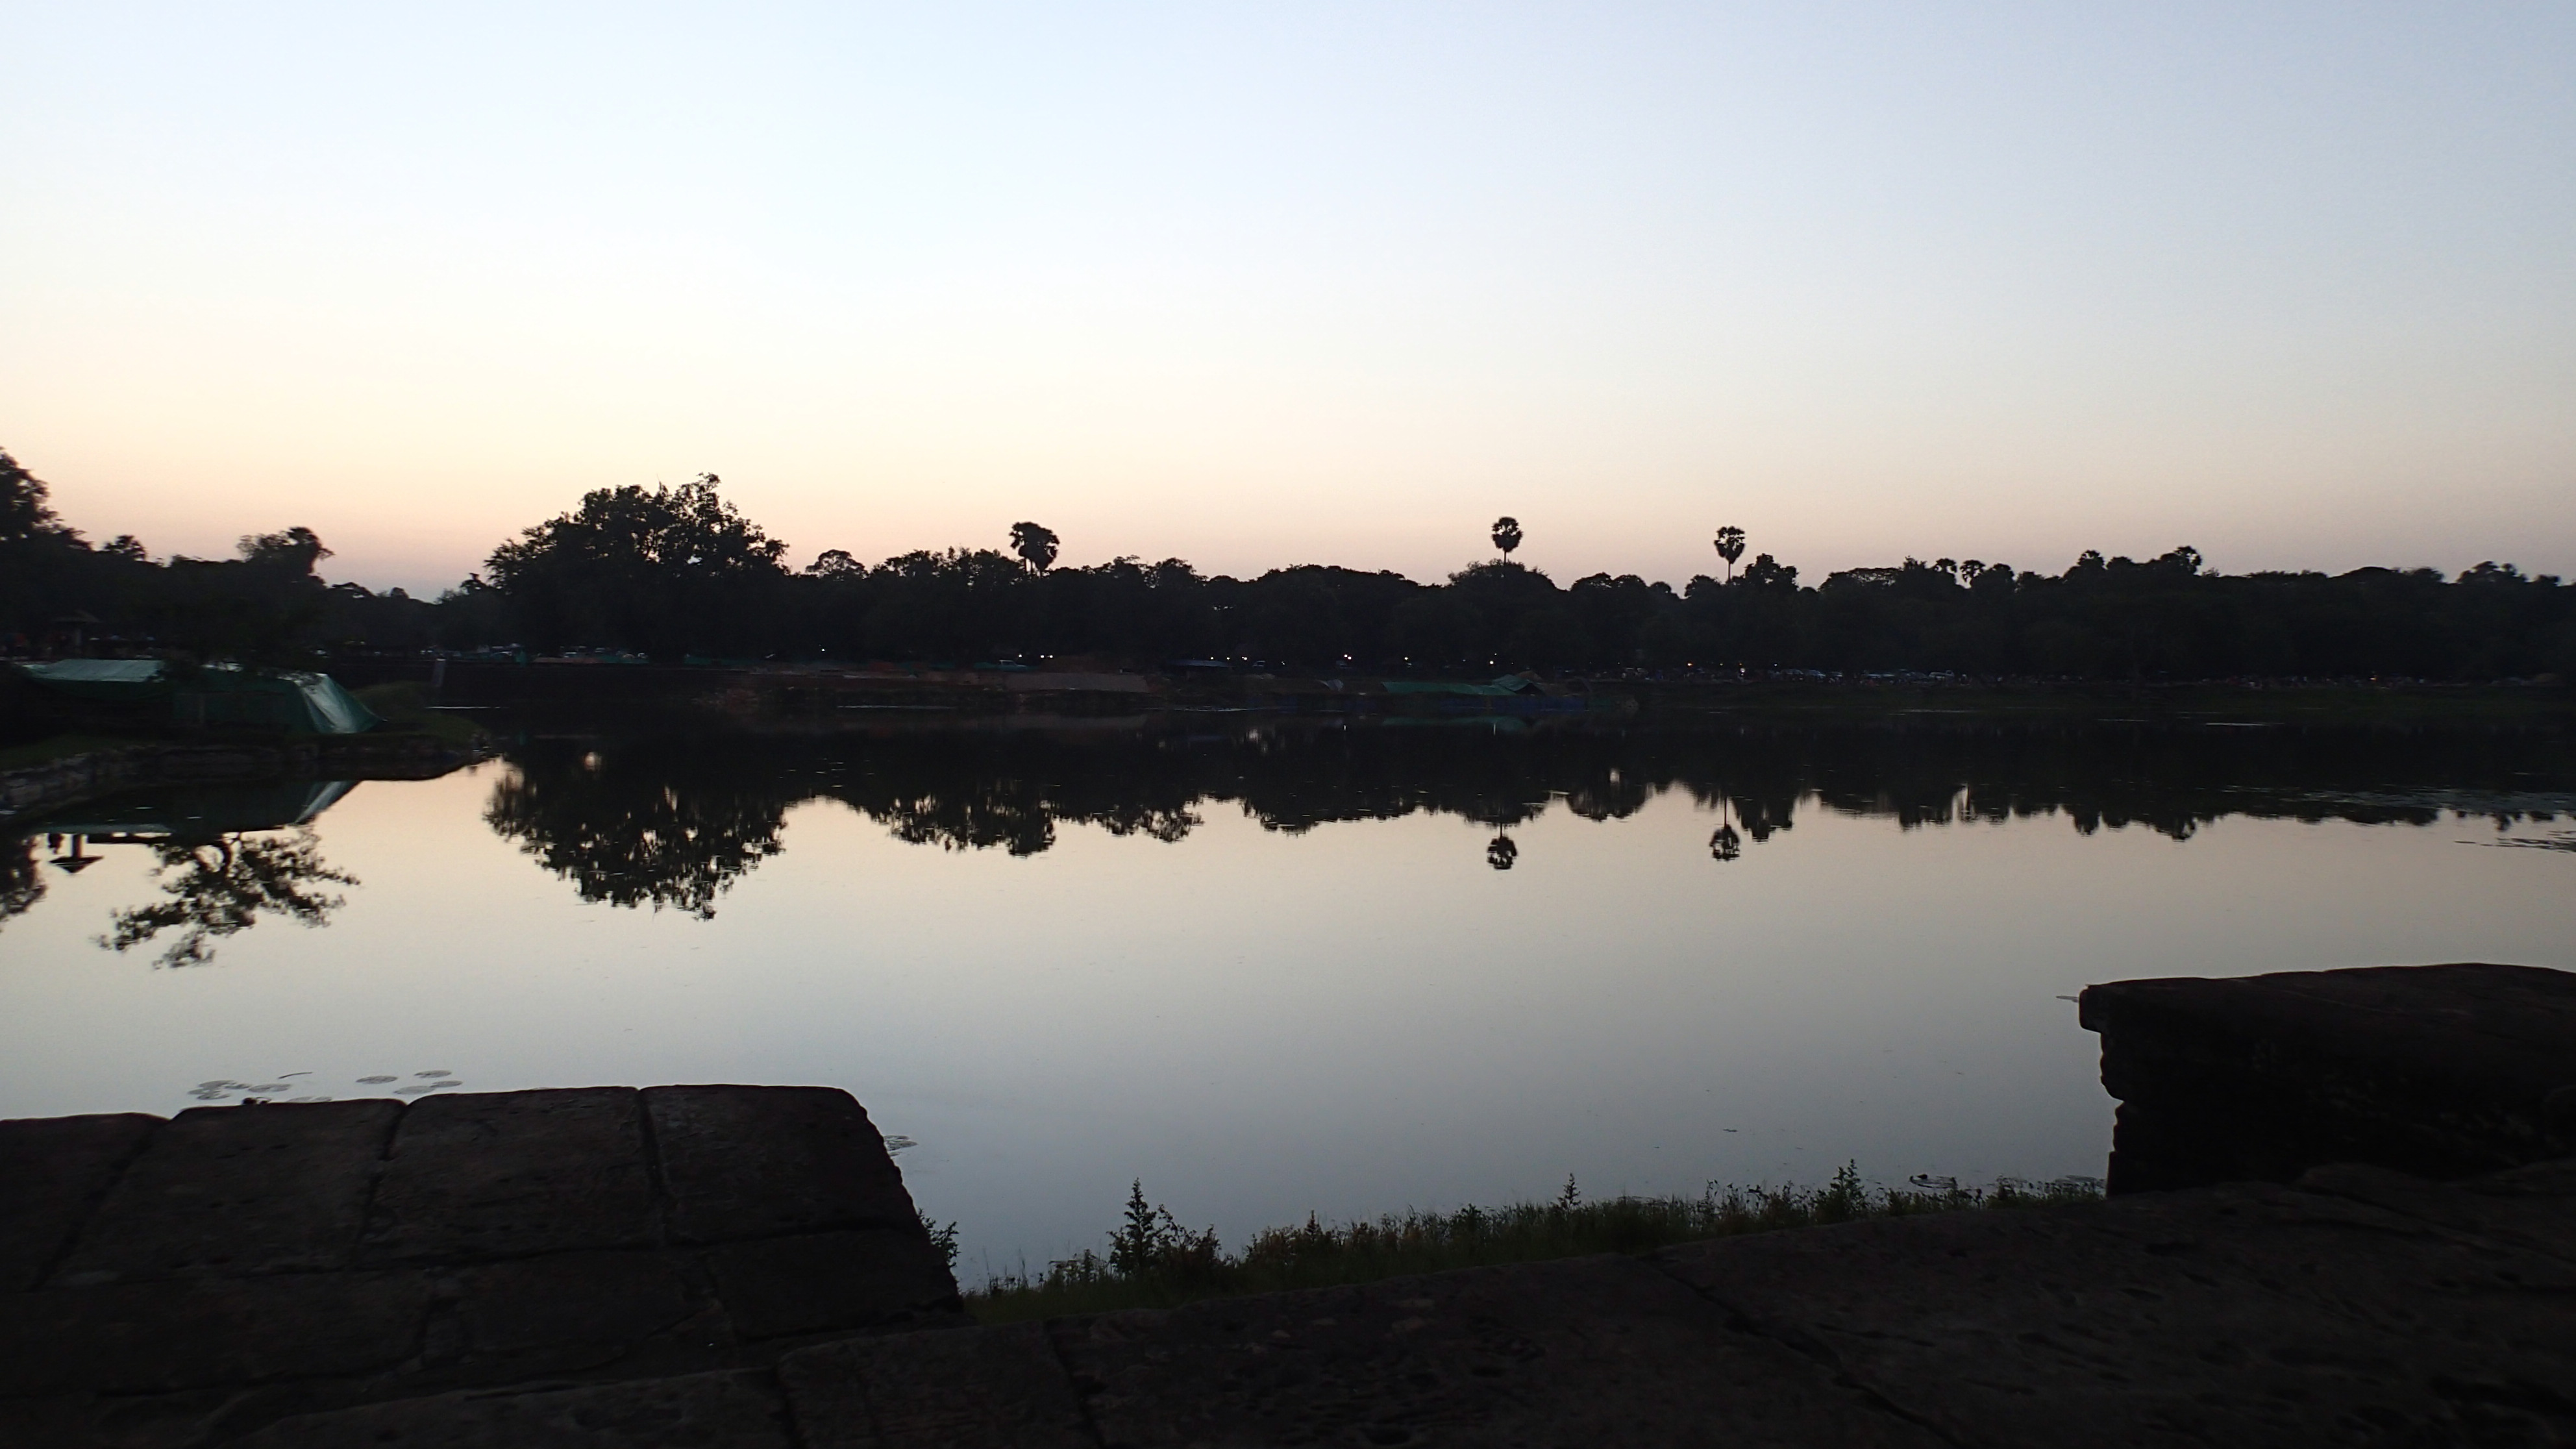 The view from Angkor Wat out across the moat